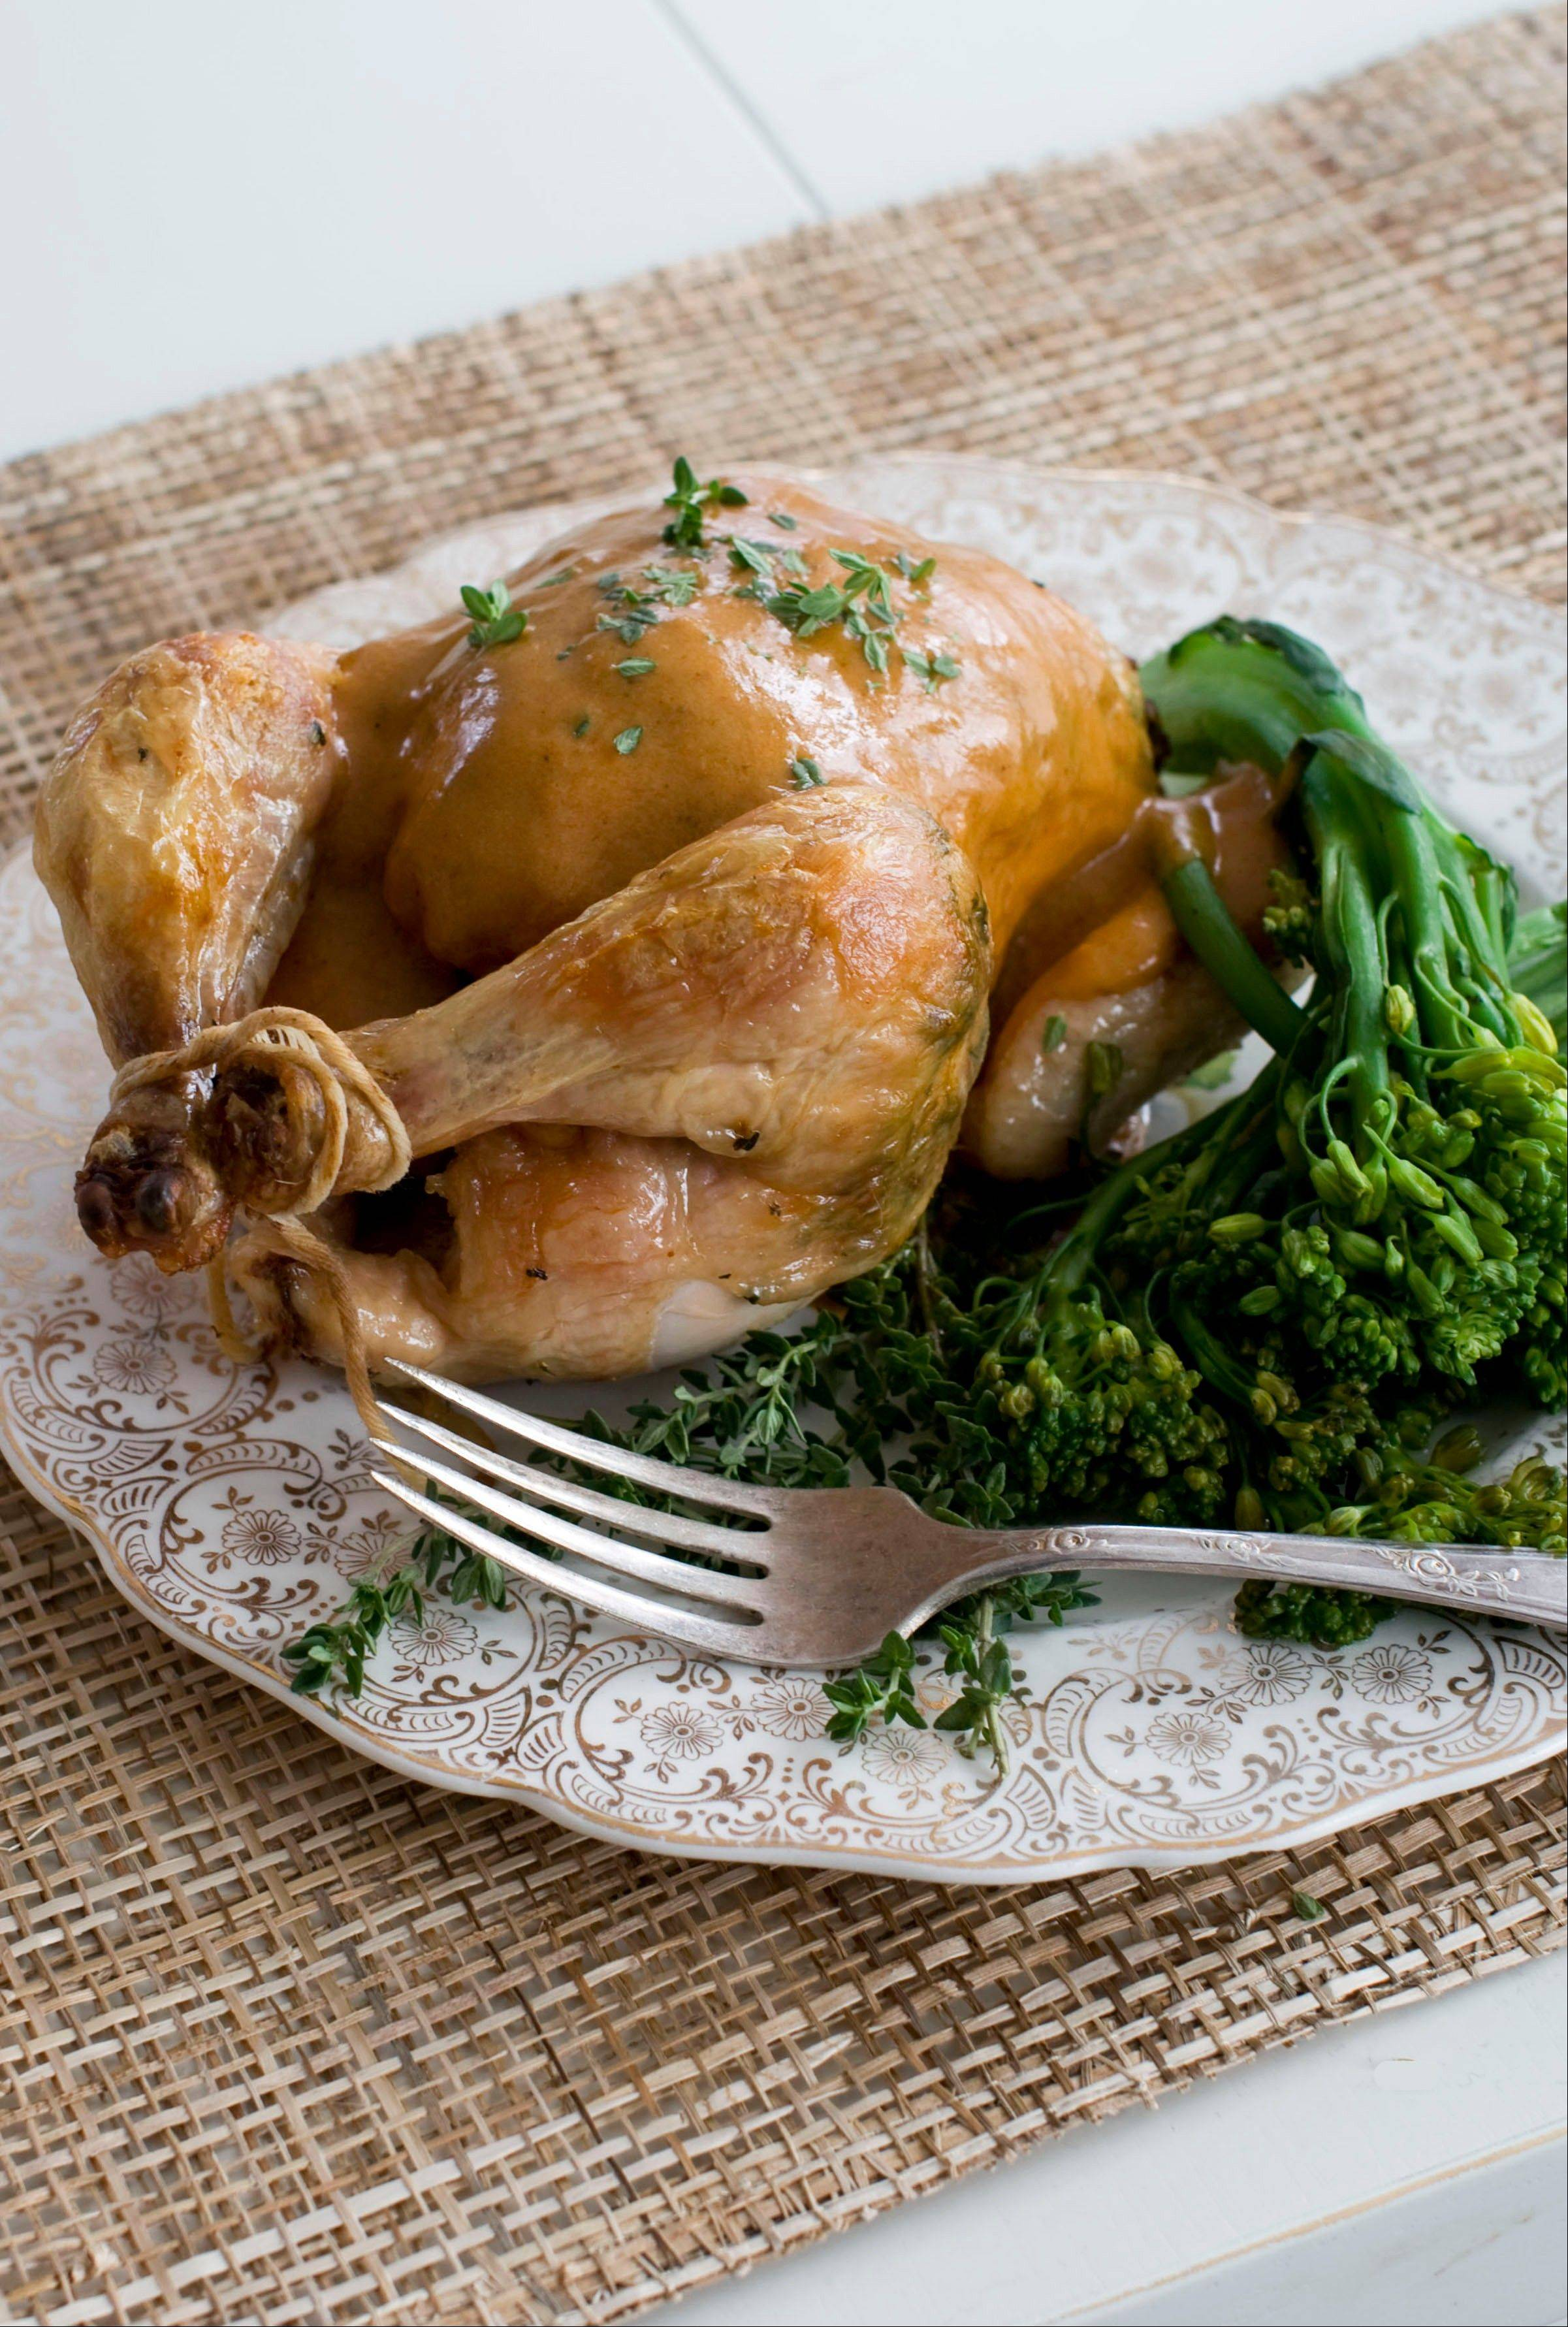 Herb roasted Cornish game hen with creamy mustard sauce makes a big impact as a holiday dinner.